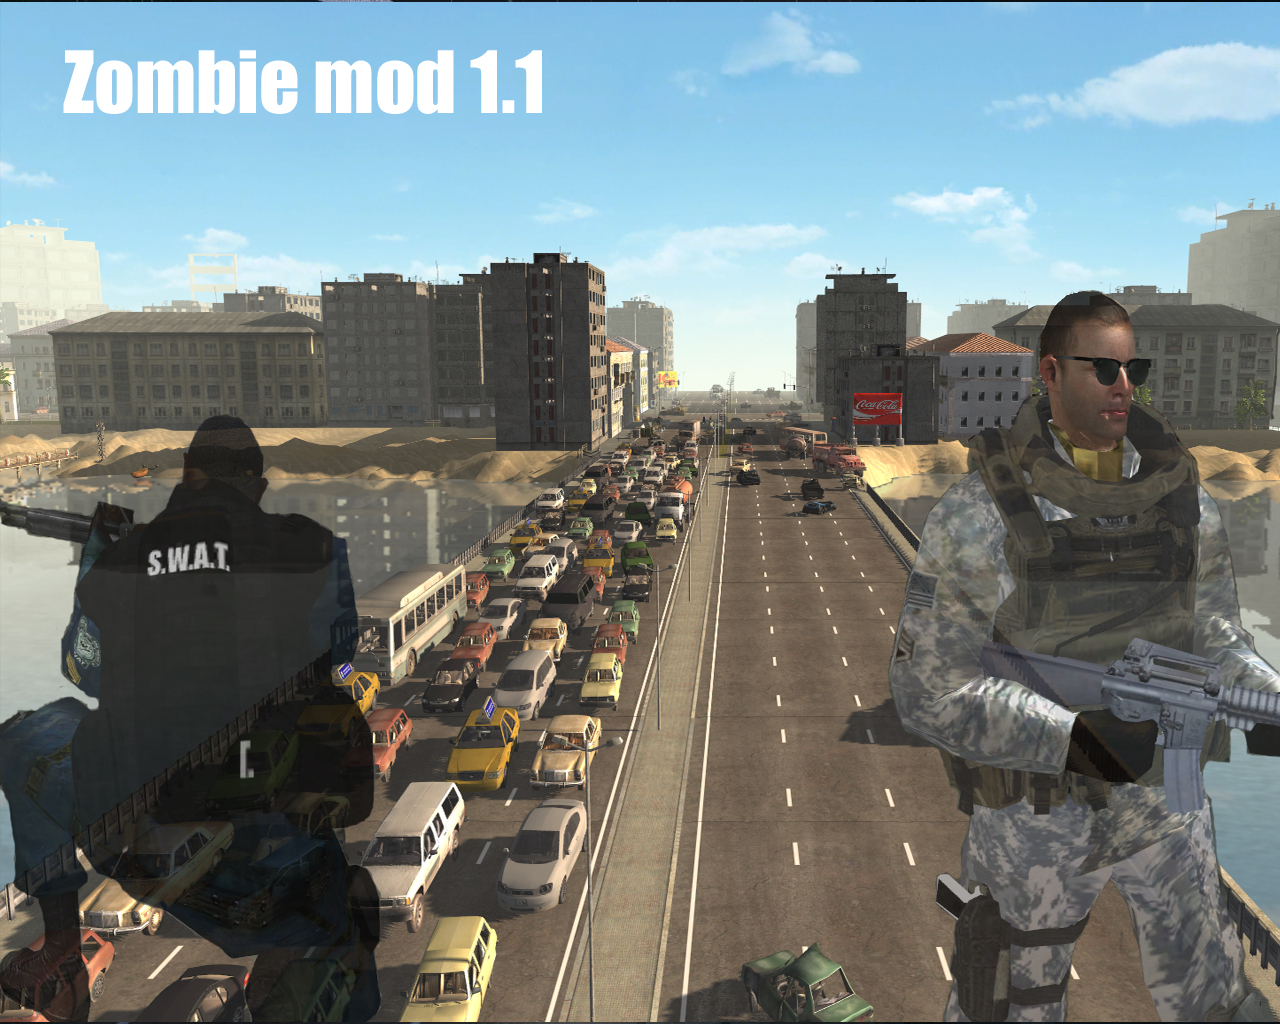 How To Use Third Person In A Car In Gmod